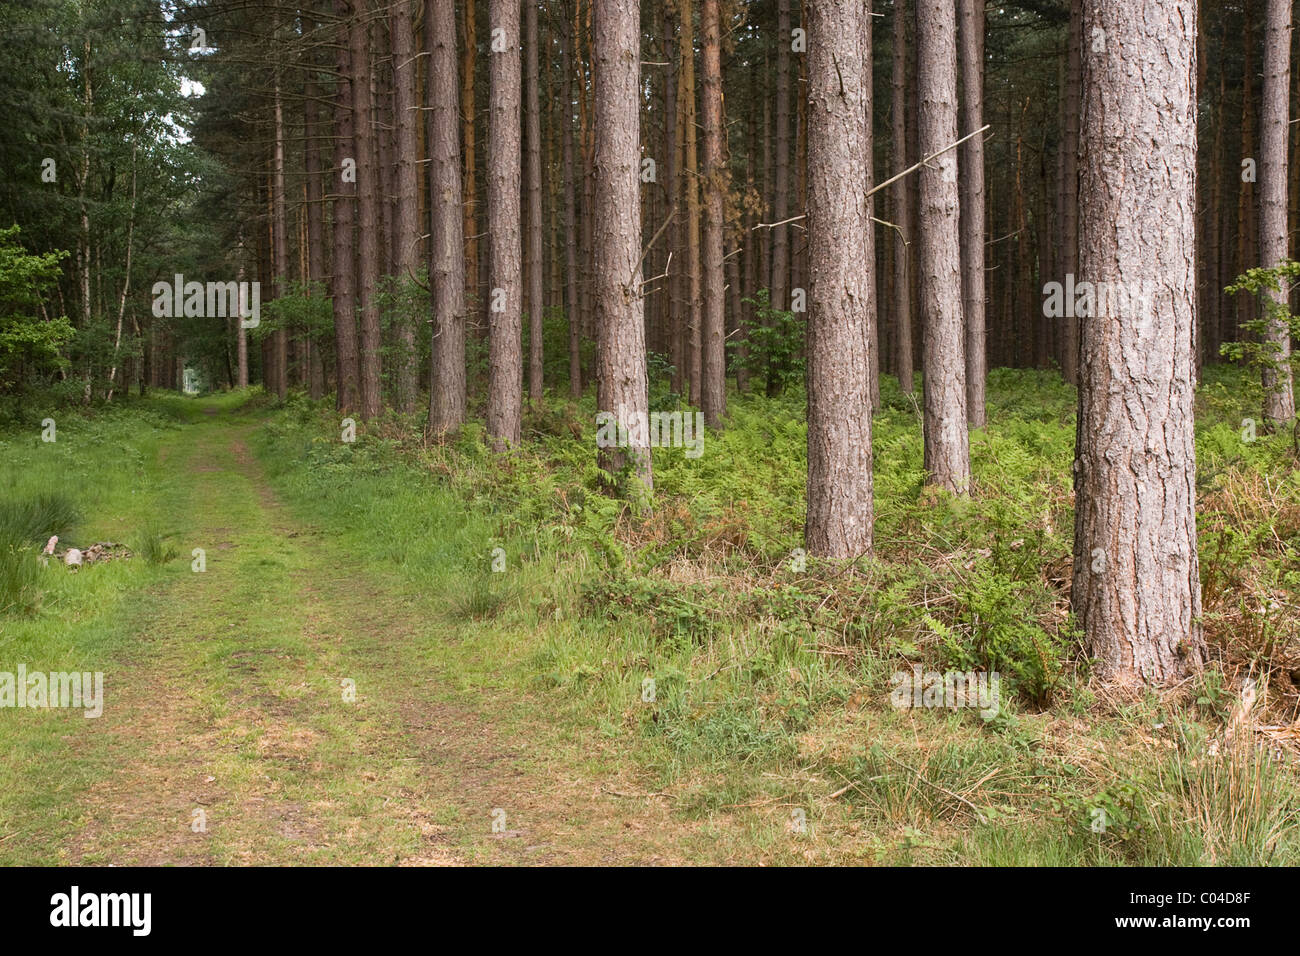 Forest ride or fire break, Clumber Park, Nottinghamshire - Stock Image